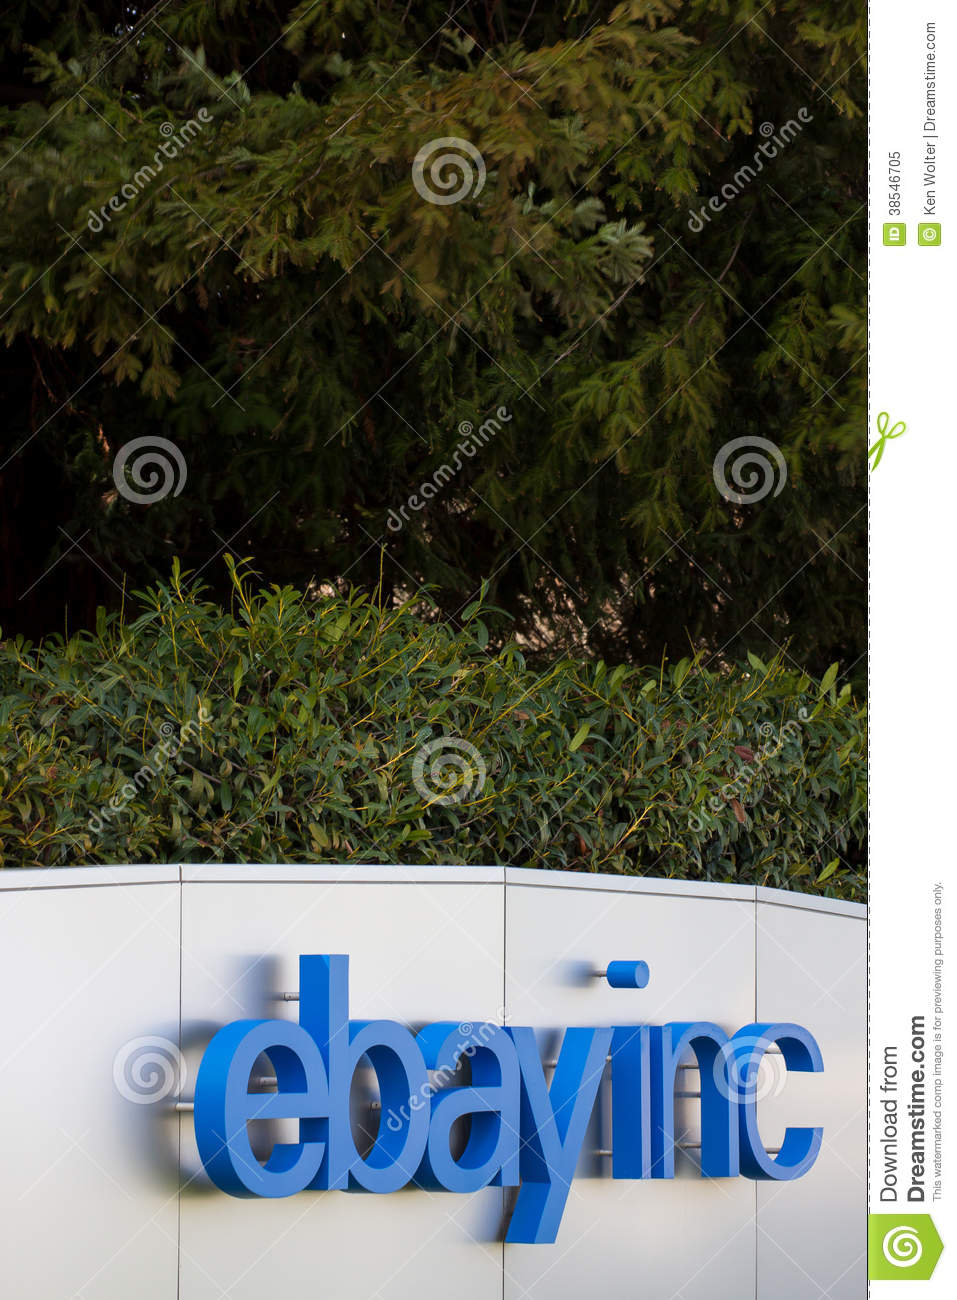 Ebay Corporate Headquarters Sign Editorial Image - Image of